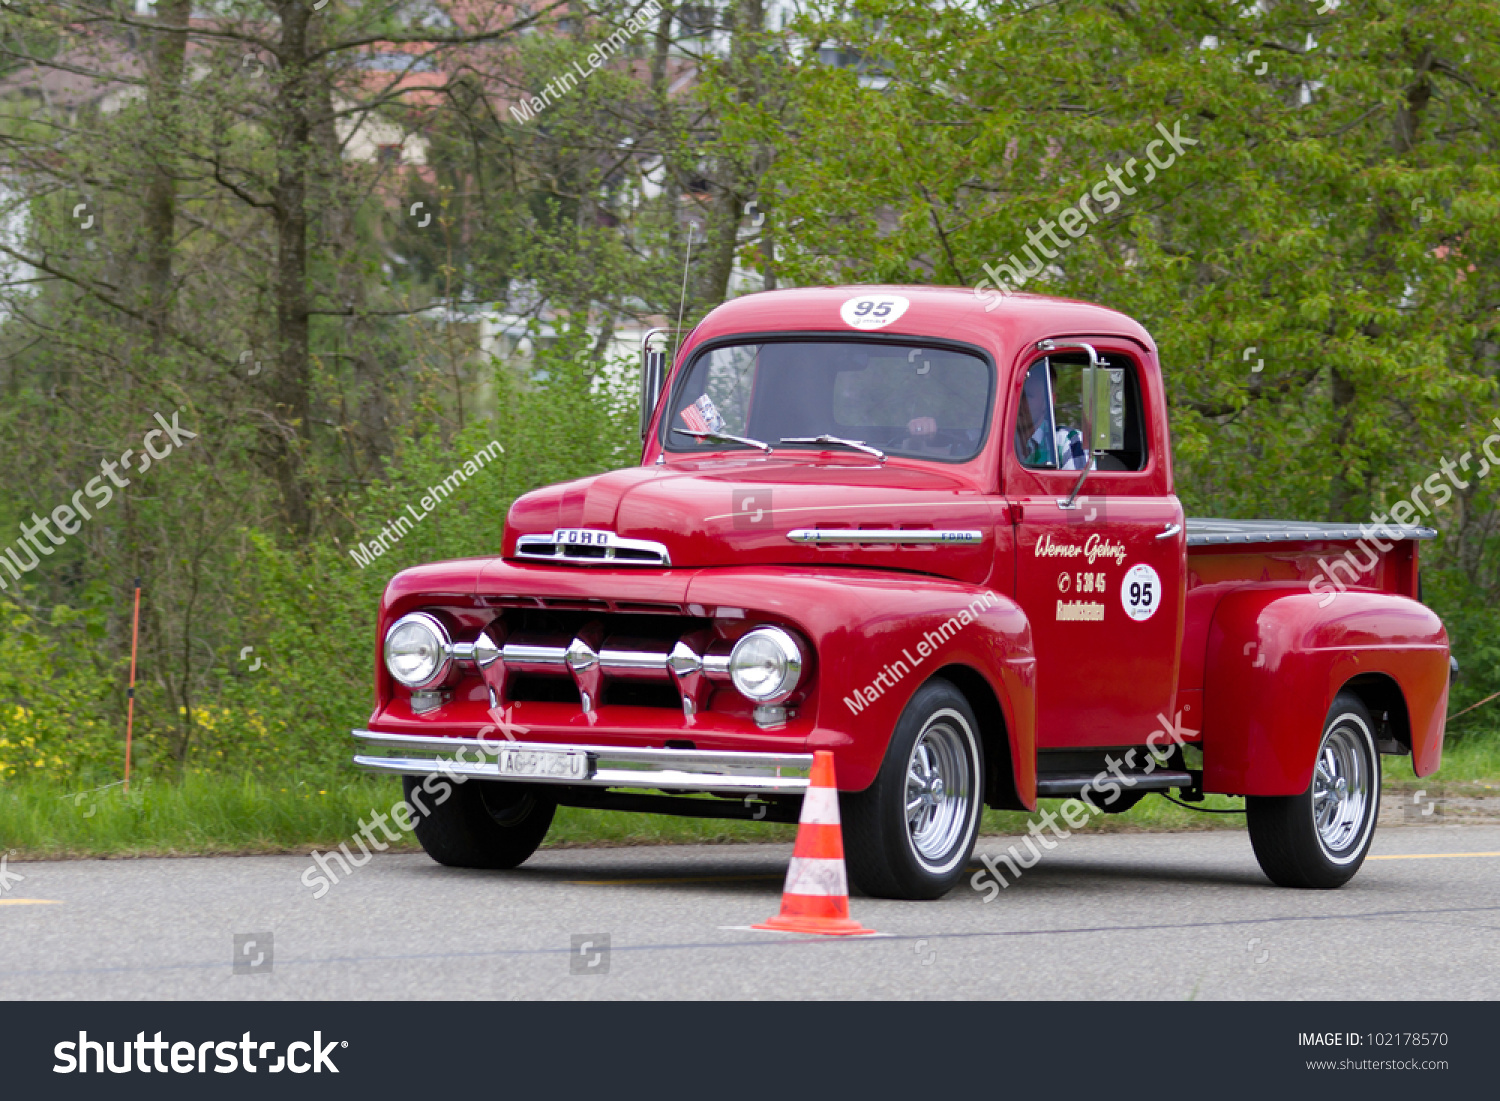 mutschellen switzerland april 29 vintage car ford f 100 pick up from 1951 at grand prix in. Black Bedroom Furniture Sets. Home Design Ideas